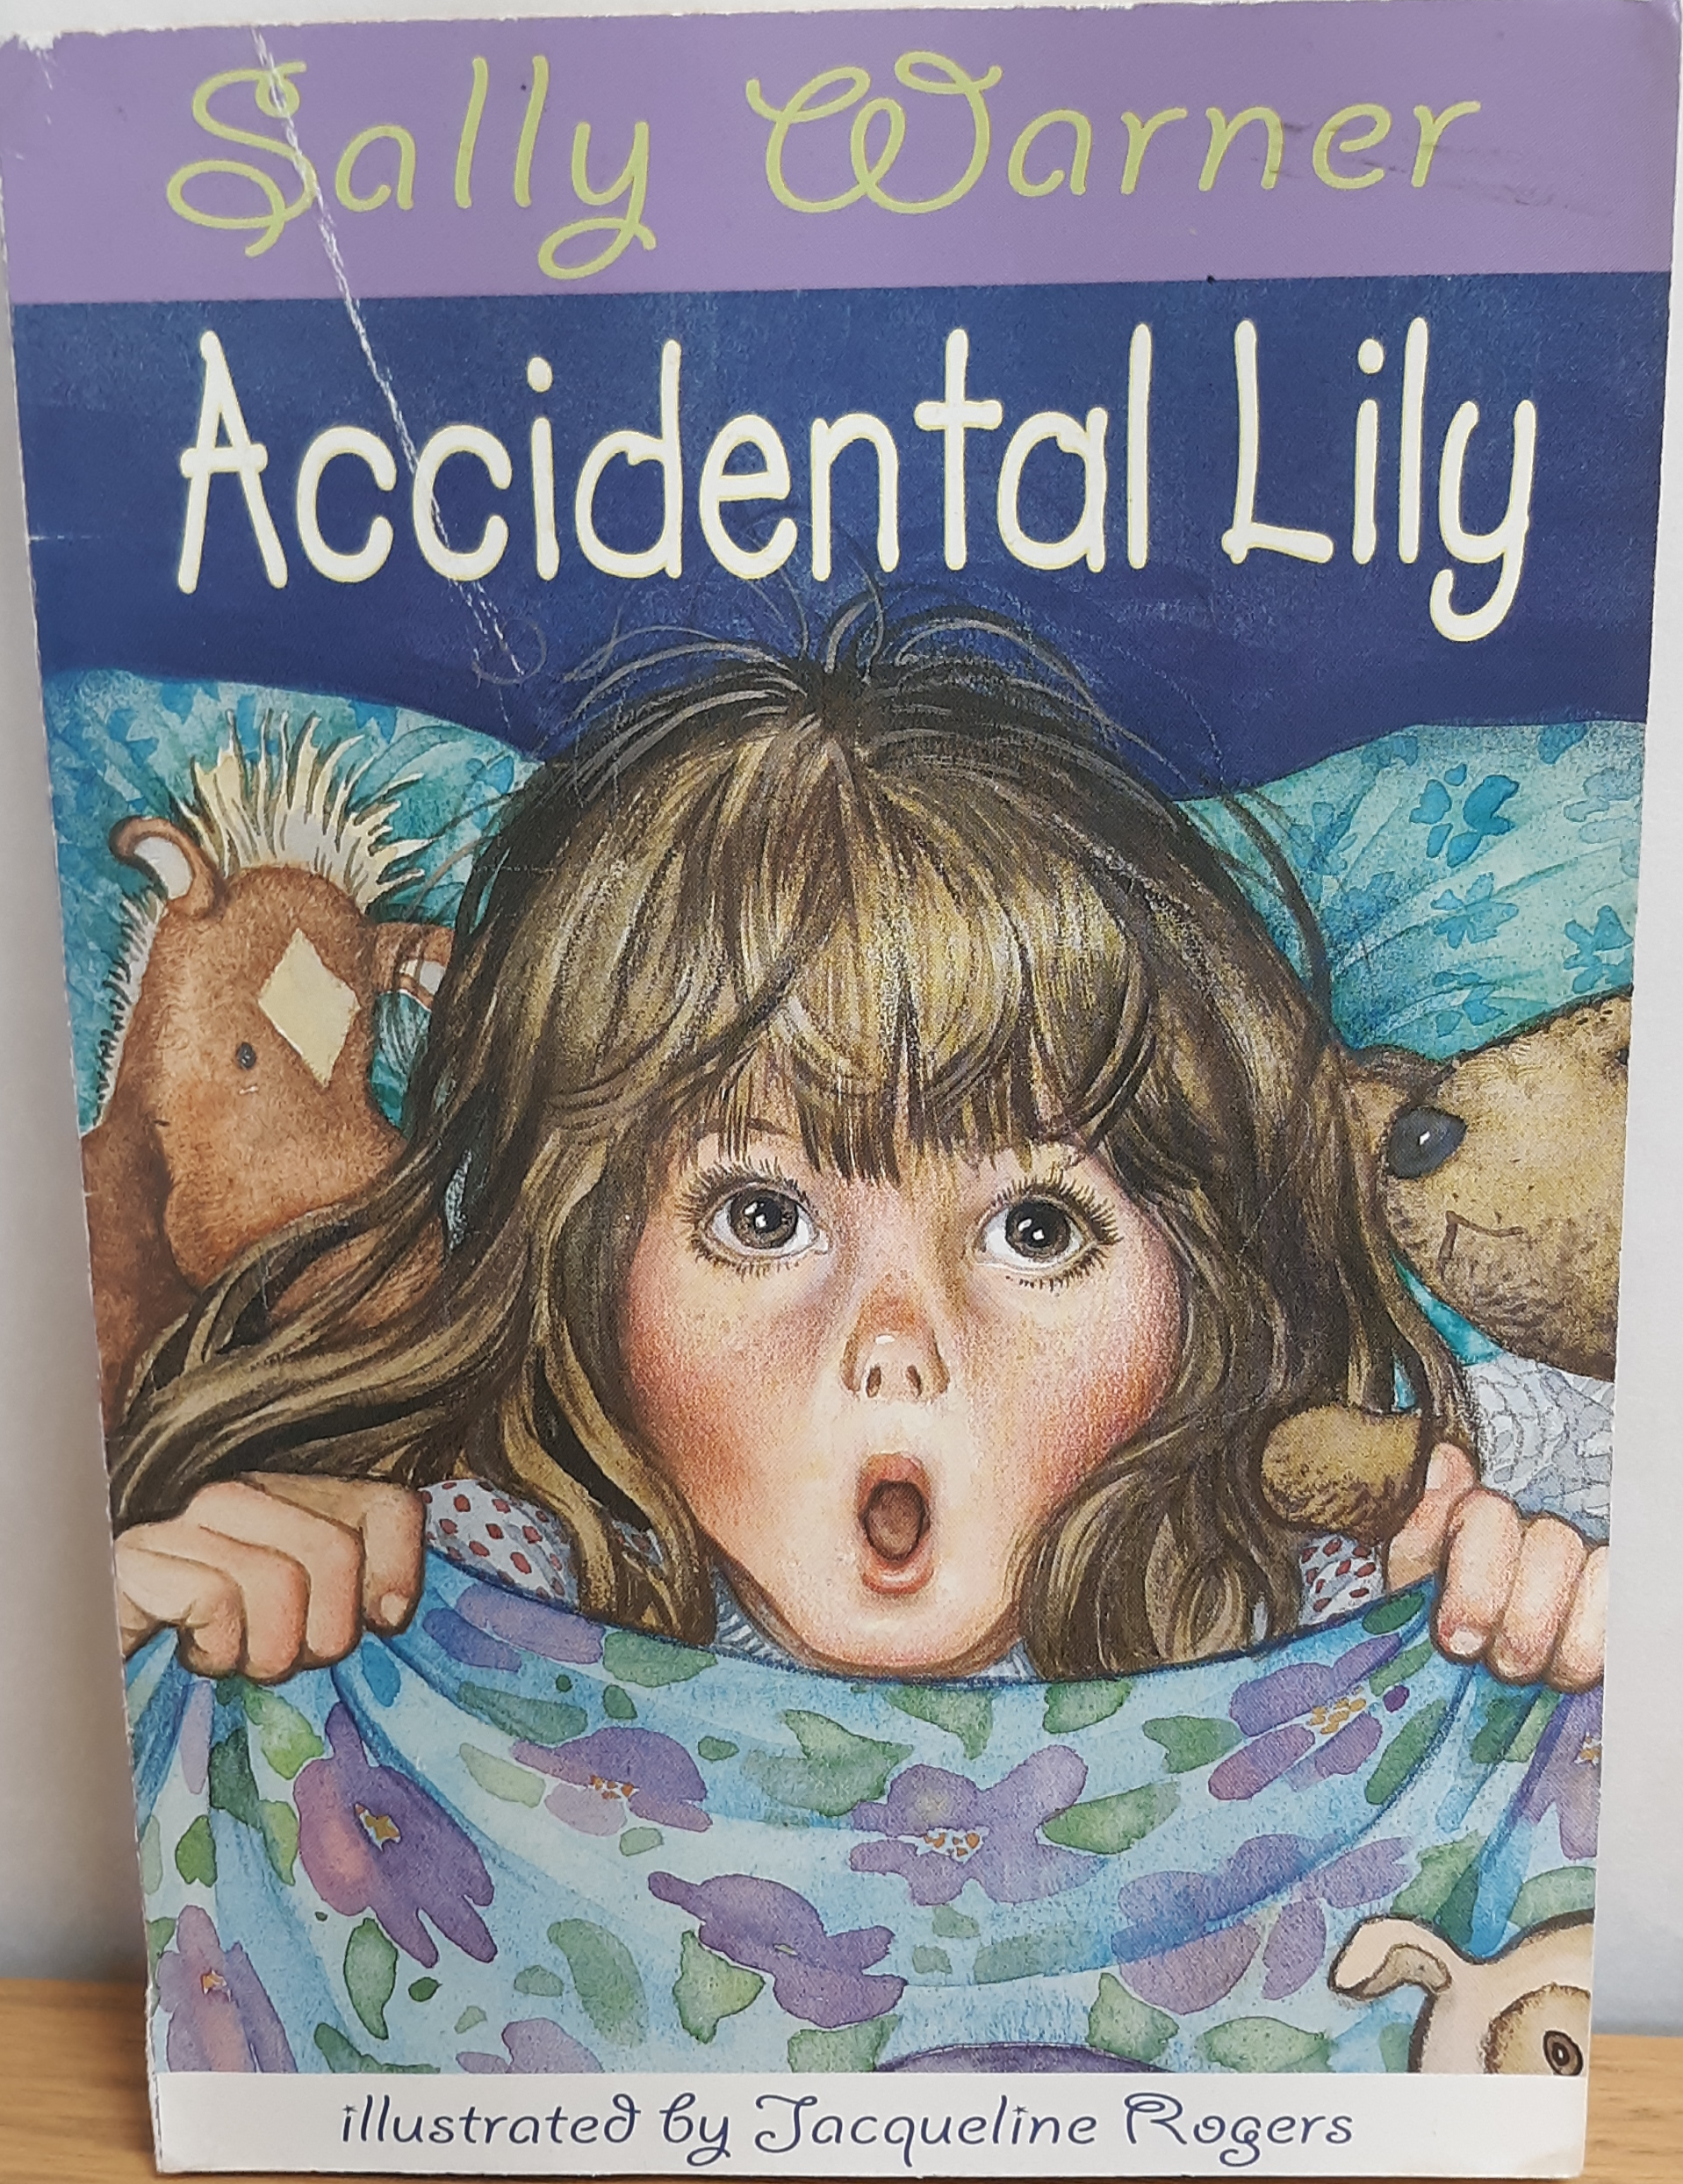 https://0201.nccdn.net/1_2/000/000/117/b69/accidental-lily.png